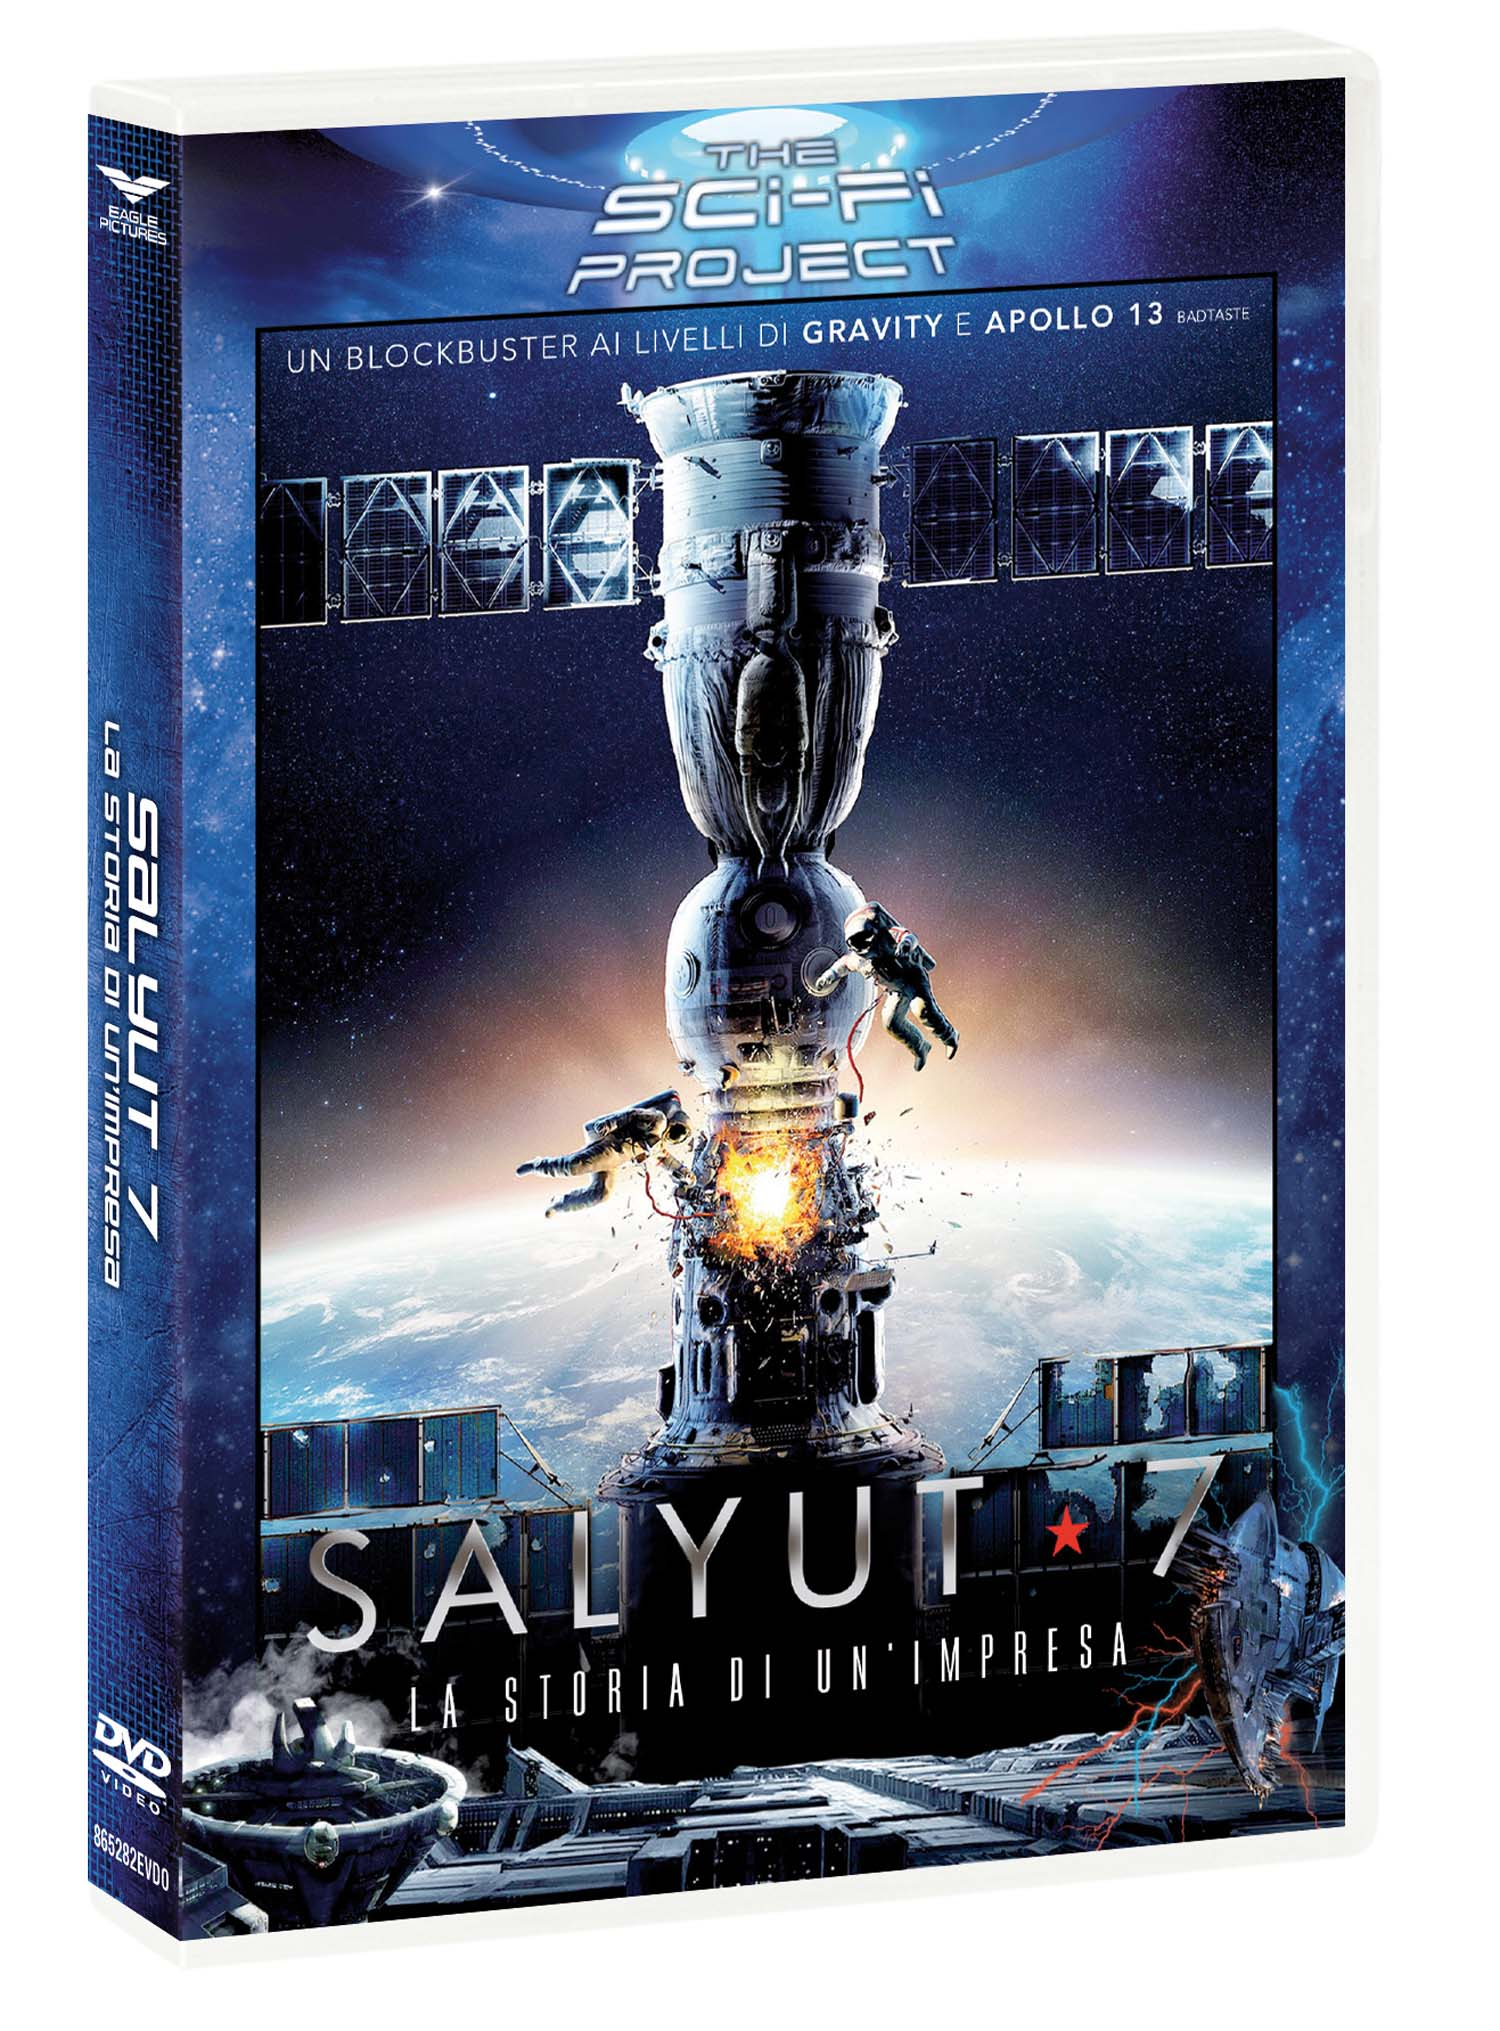 SALYUT 7 (SCI-FI PROJECT) (DVD)